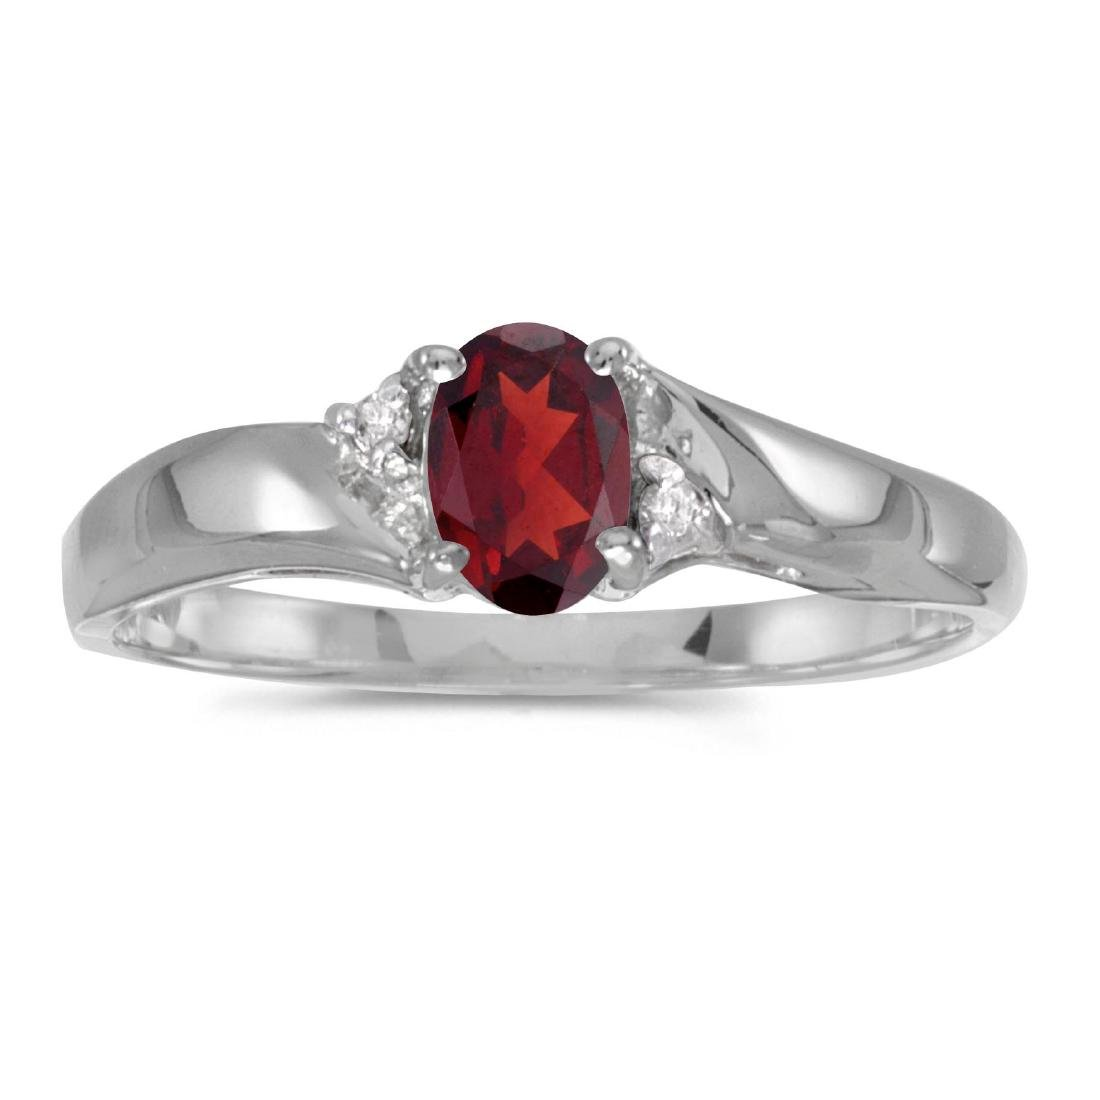 Certified 14k White Gold Oval Garnet And Diamond Ring 0